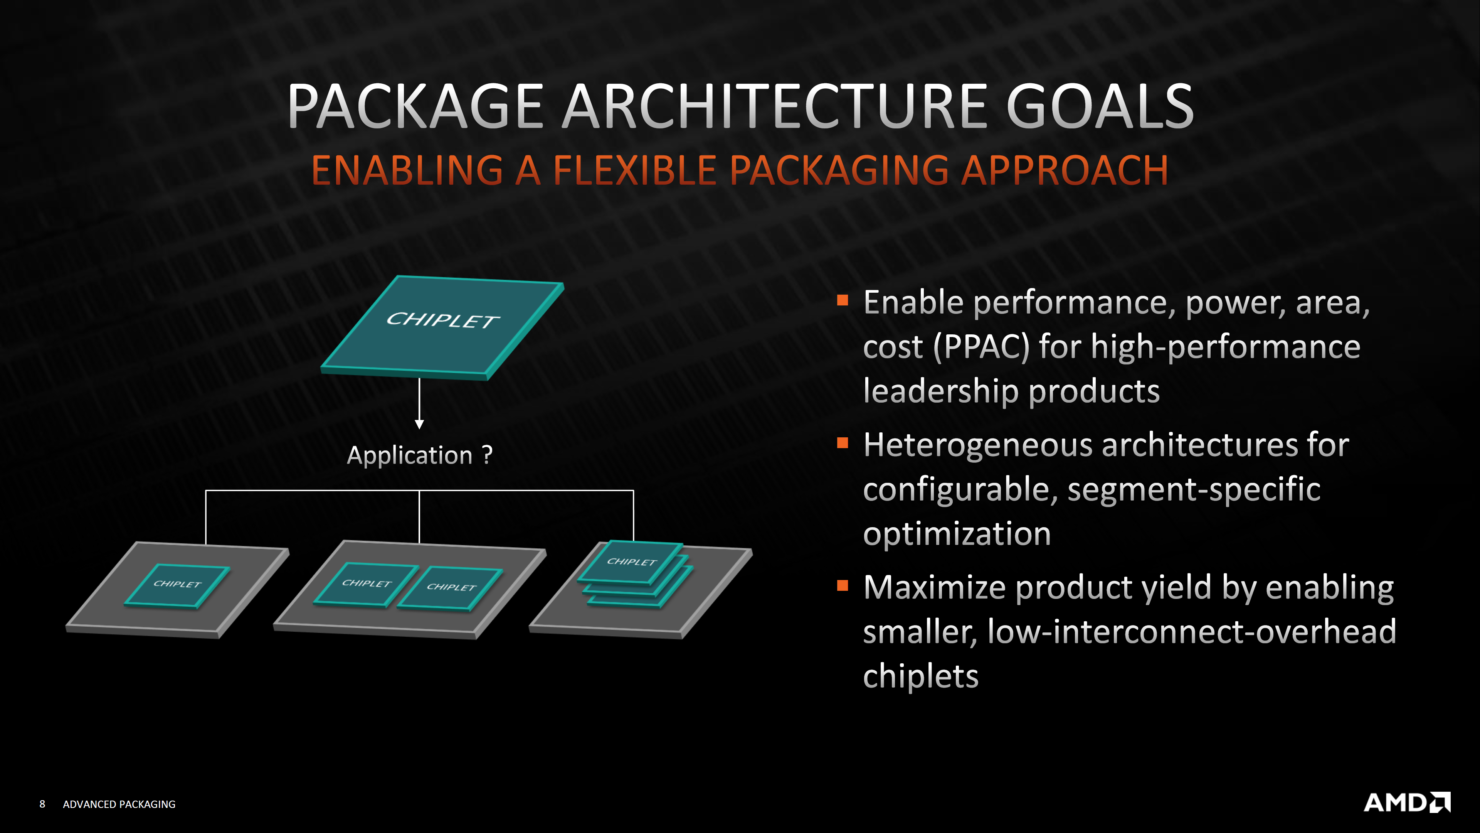 amd-advanced-3d-chiplet-packaging-3d-stacking-technologies-3d-v-cache-_7